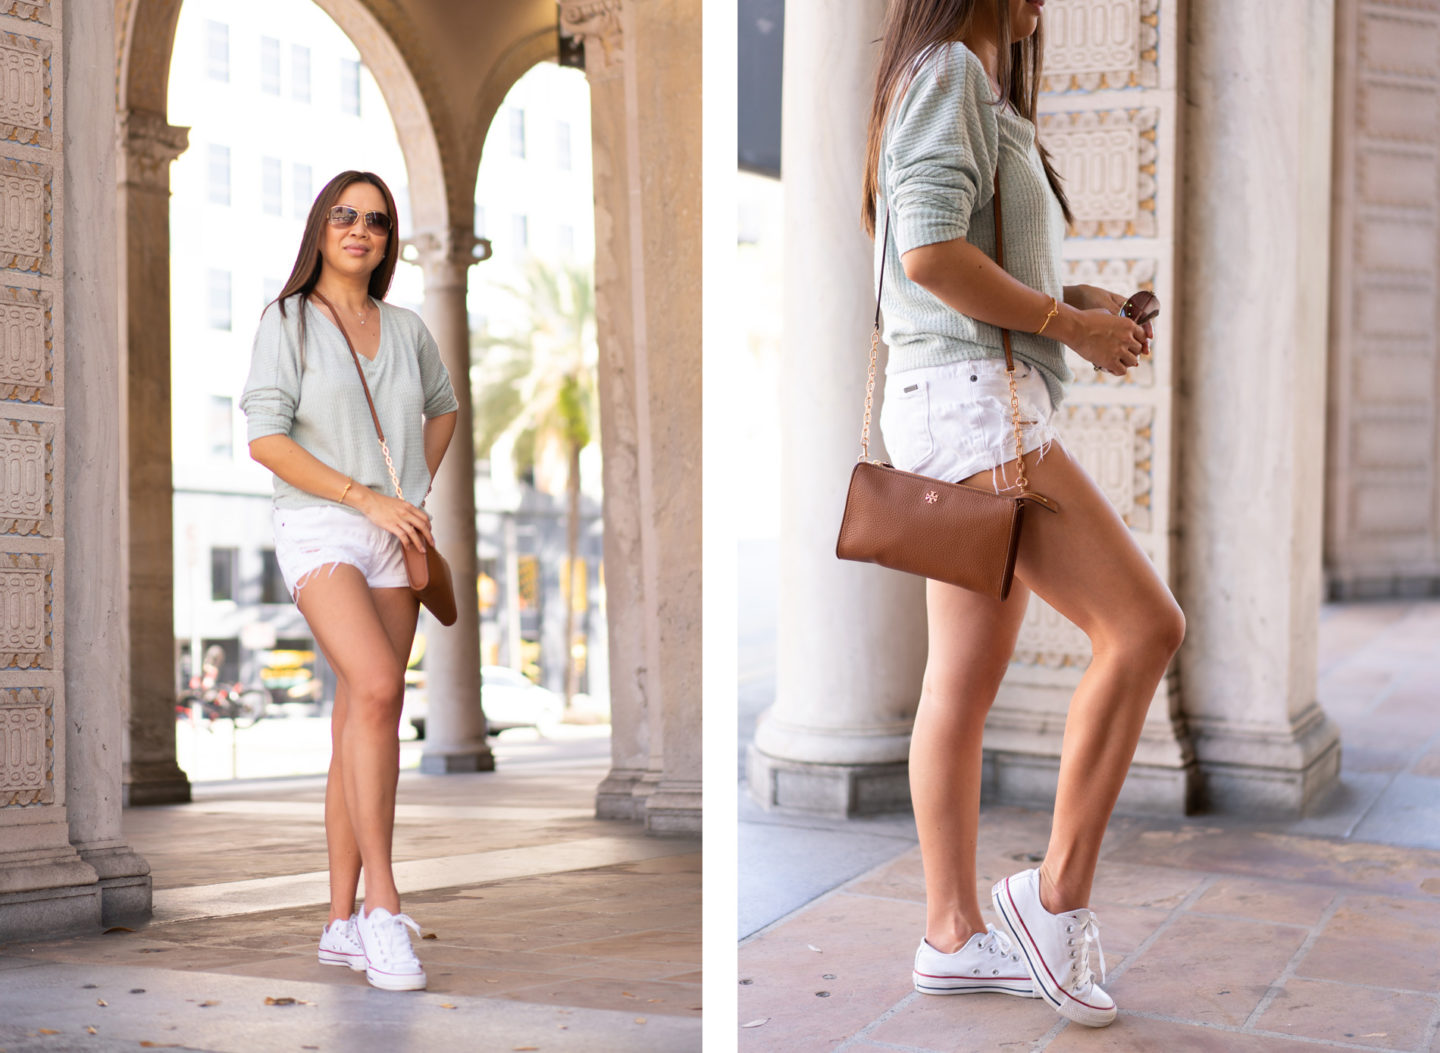 Anthropologie Cloudfleece Top, STS Blue Shorts, Tory Burch Crossbody